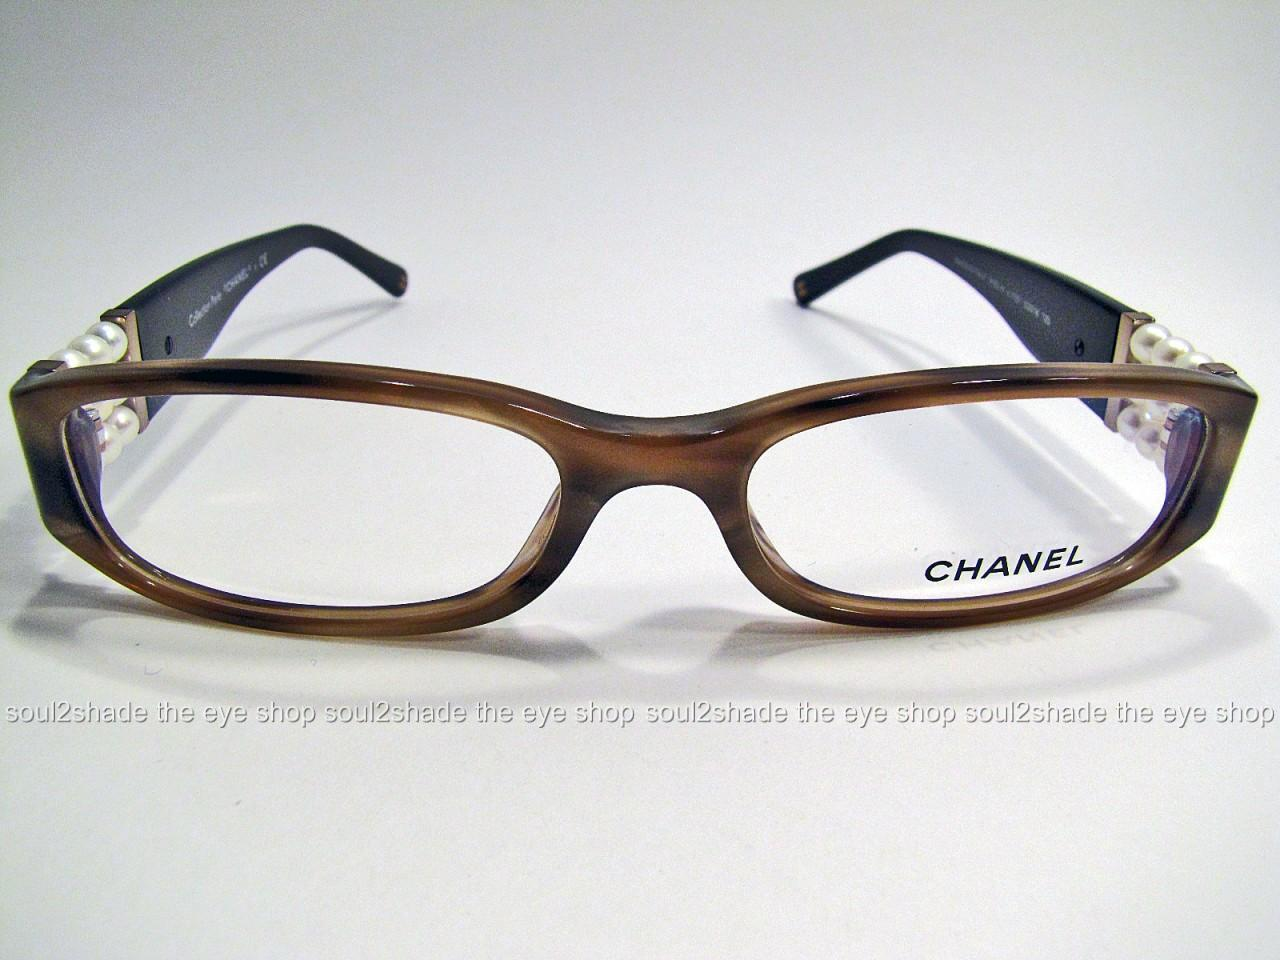 04ddaceb6ea0 Chanel Glasses Frames With Pearls